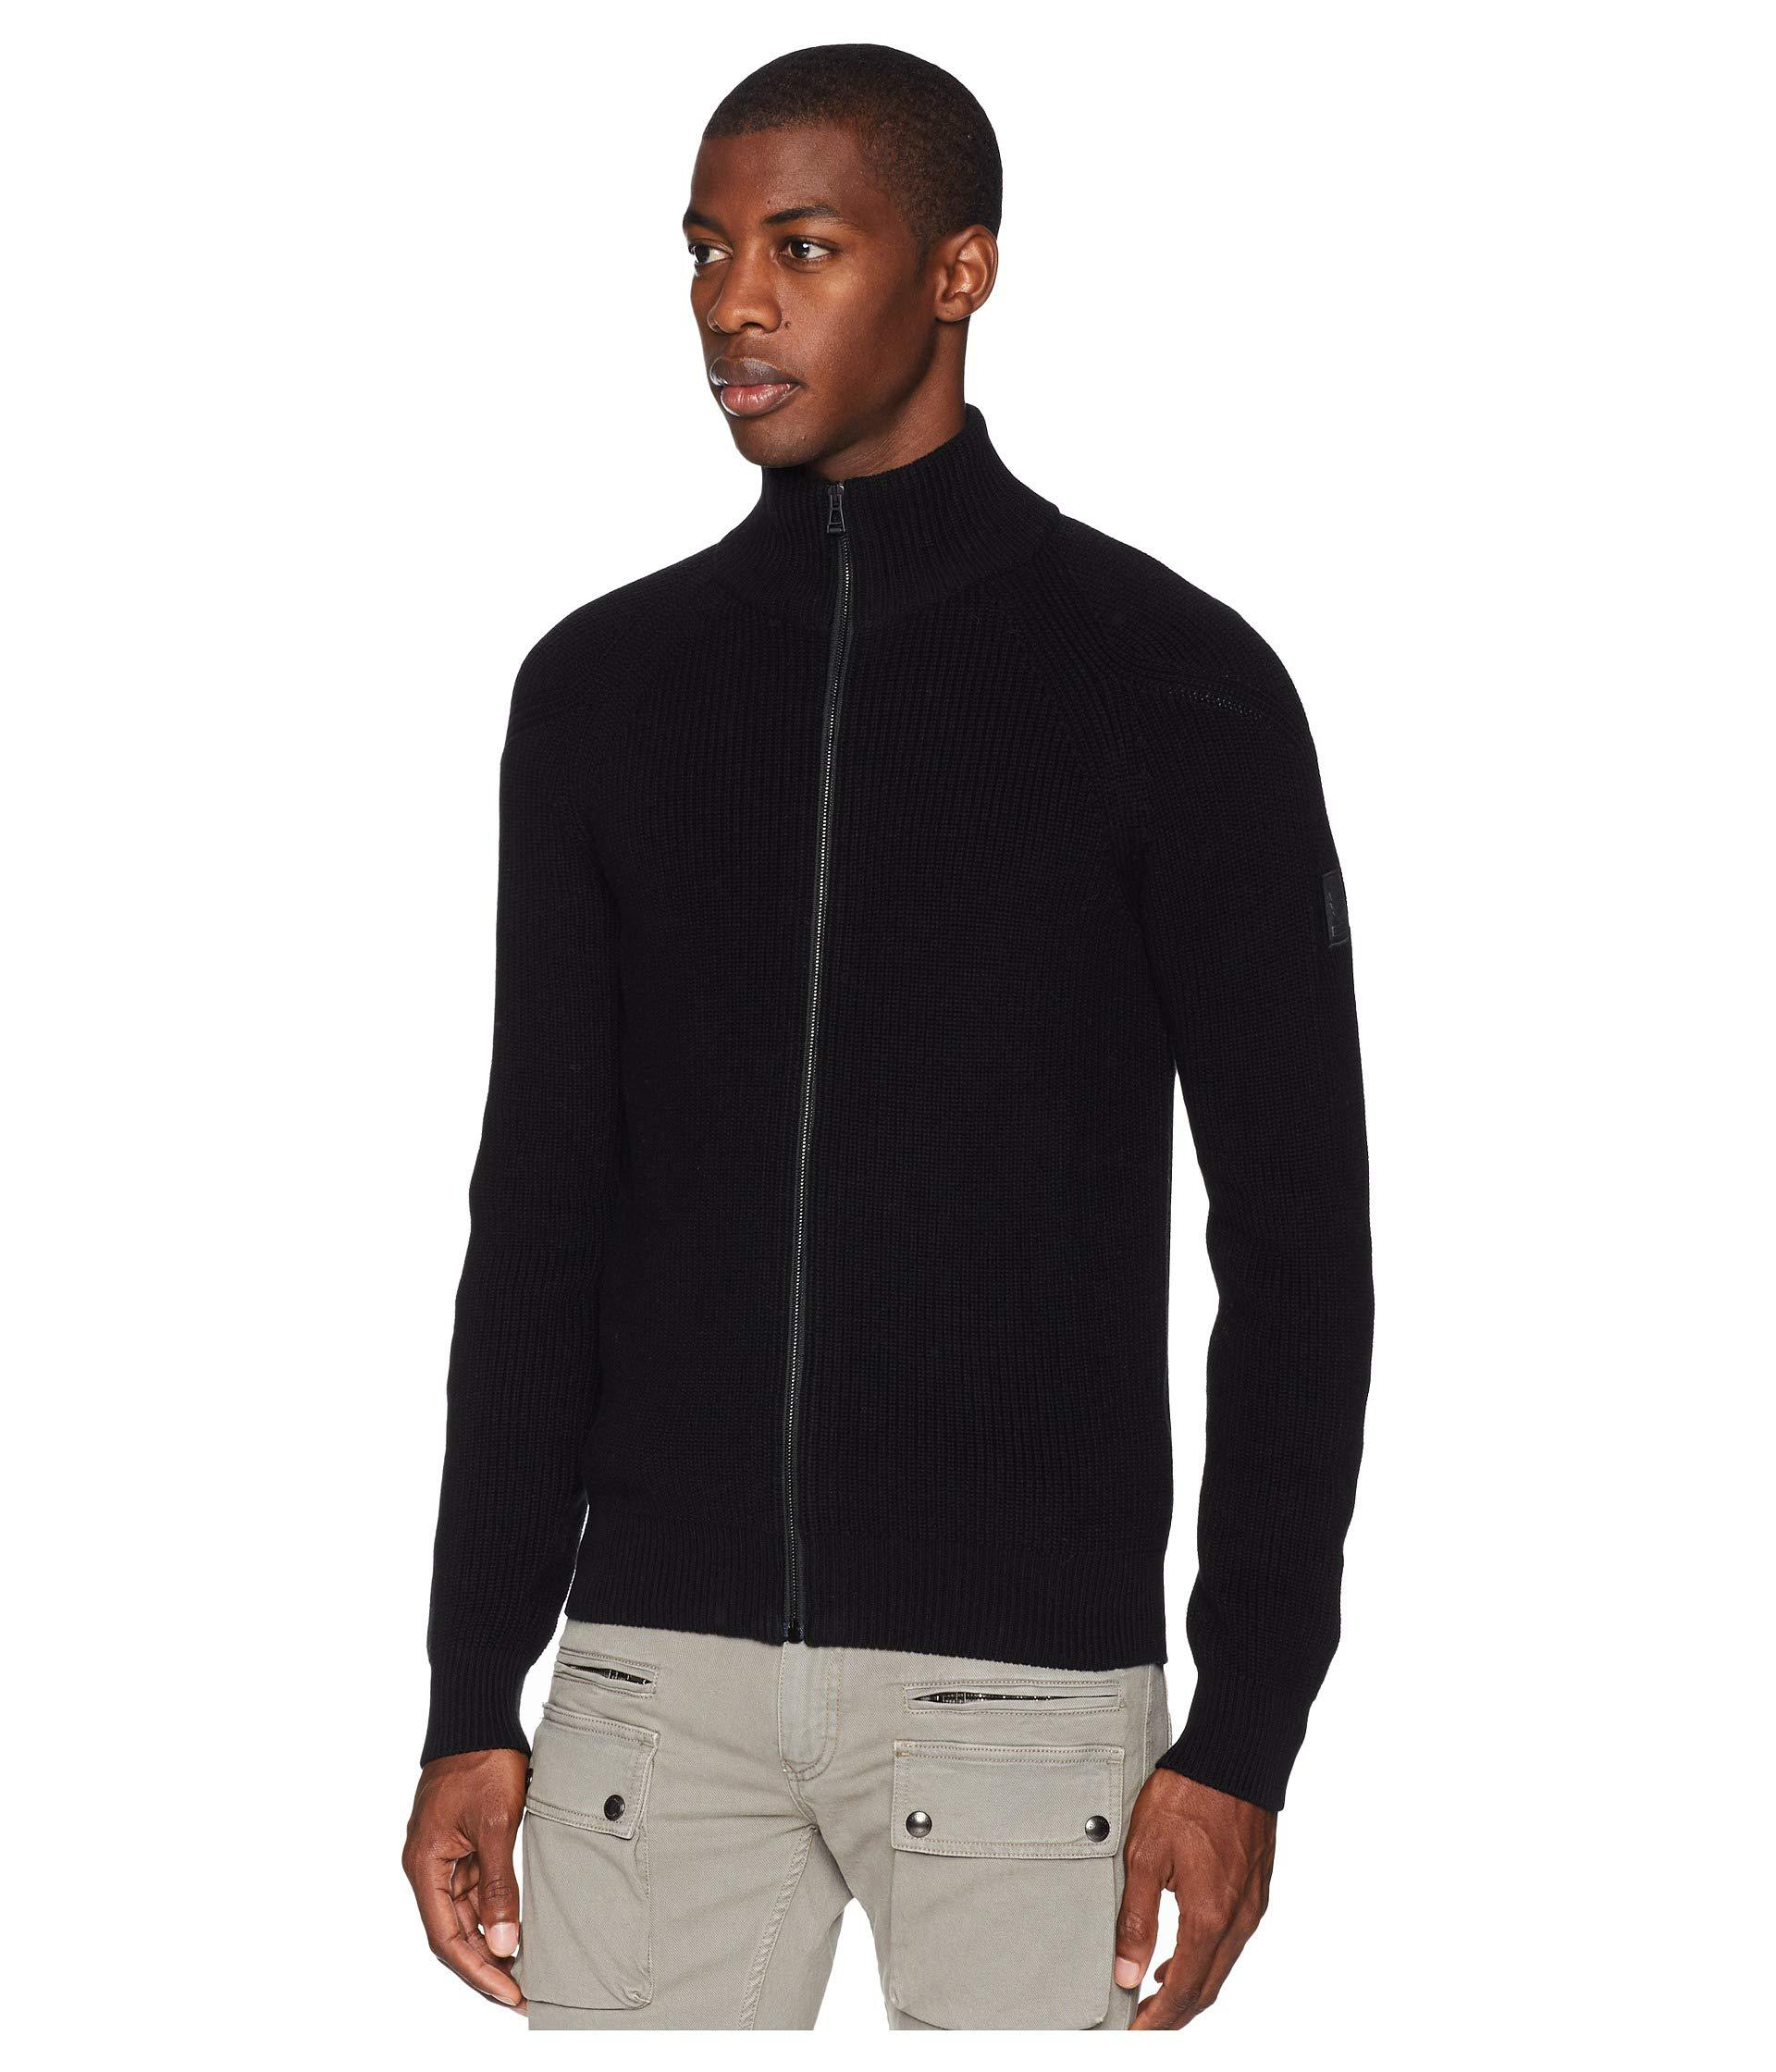 b883abb70133 Lyst - Belstaff Parkgate Ribbed Sweater (black) Men s Sweater in Black for  Men